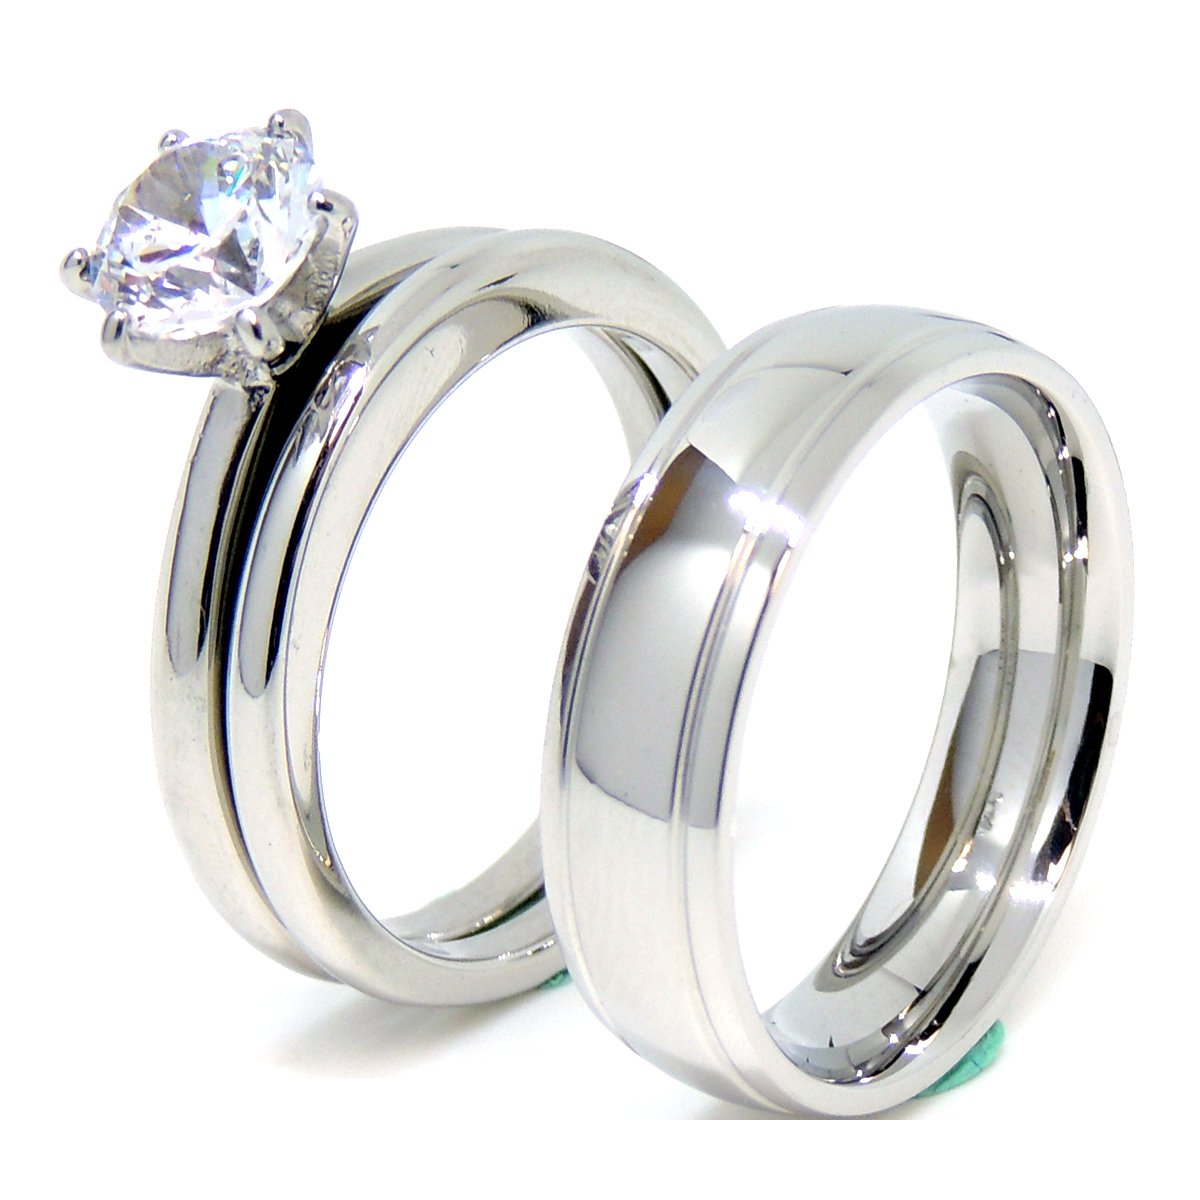 Lanyjewelry Matching Couple Ring Set Womens Wedding Ring Set Mens Dome Grooved Edge Band - Size W8M8